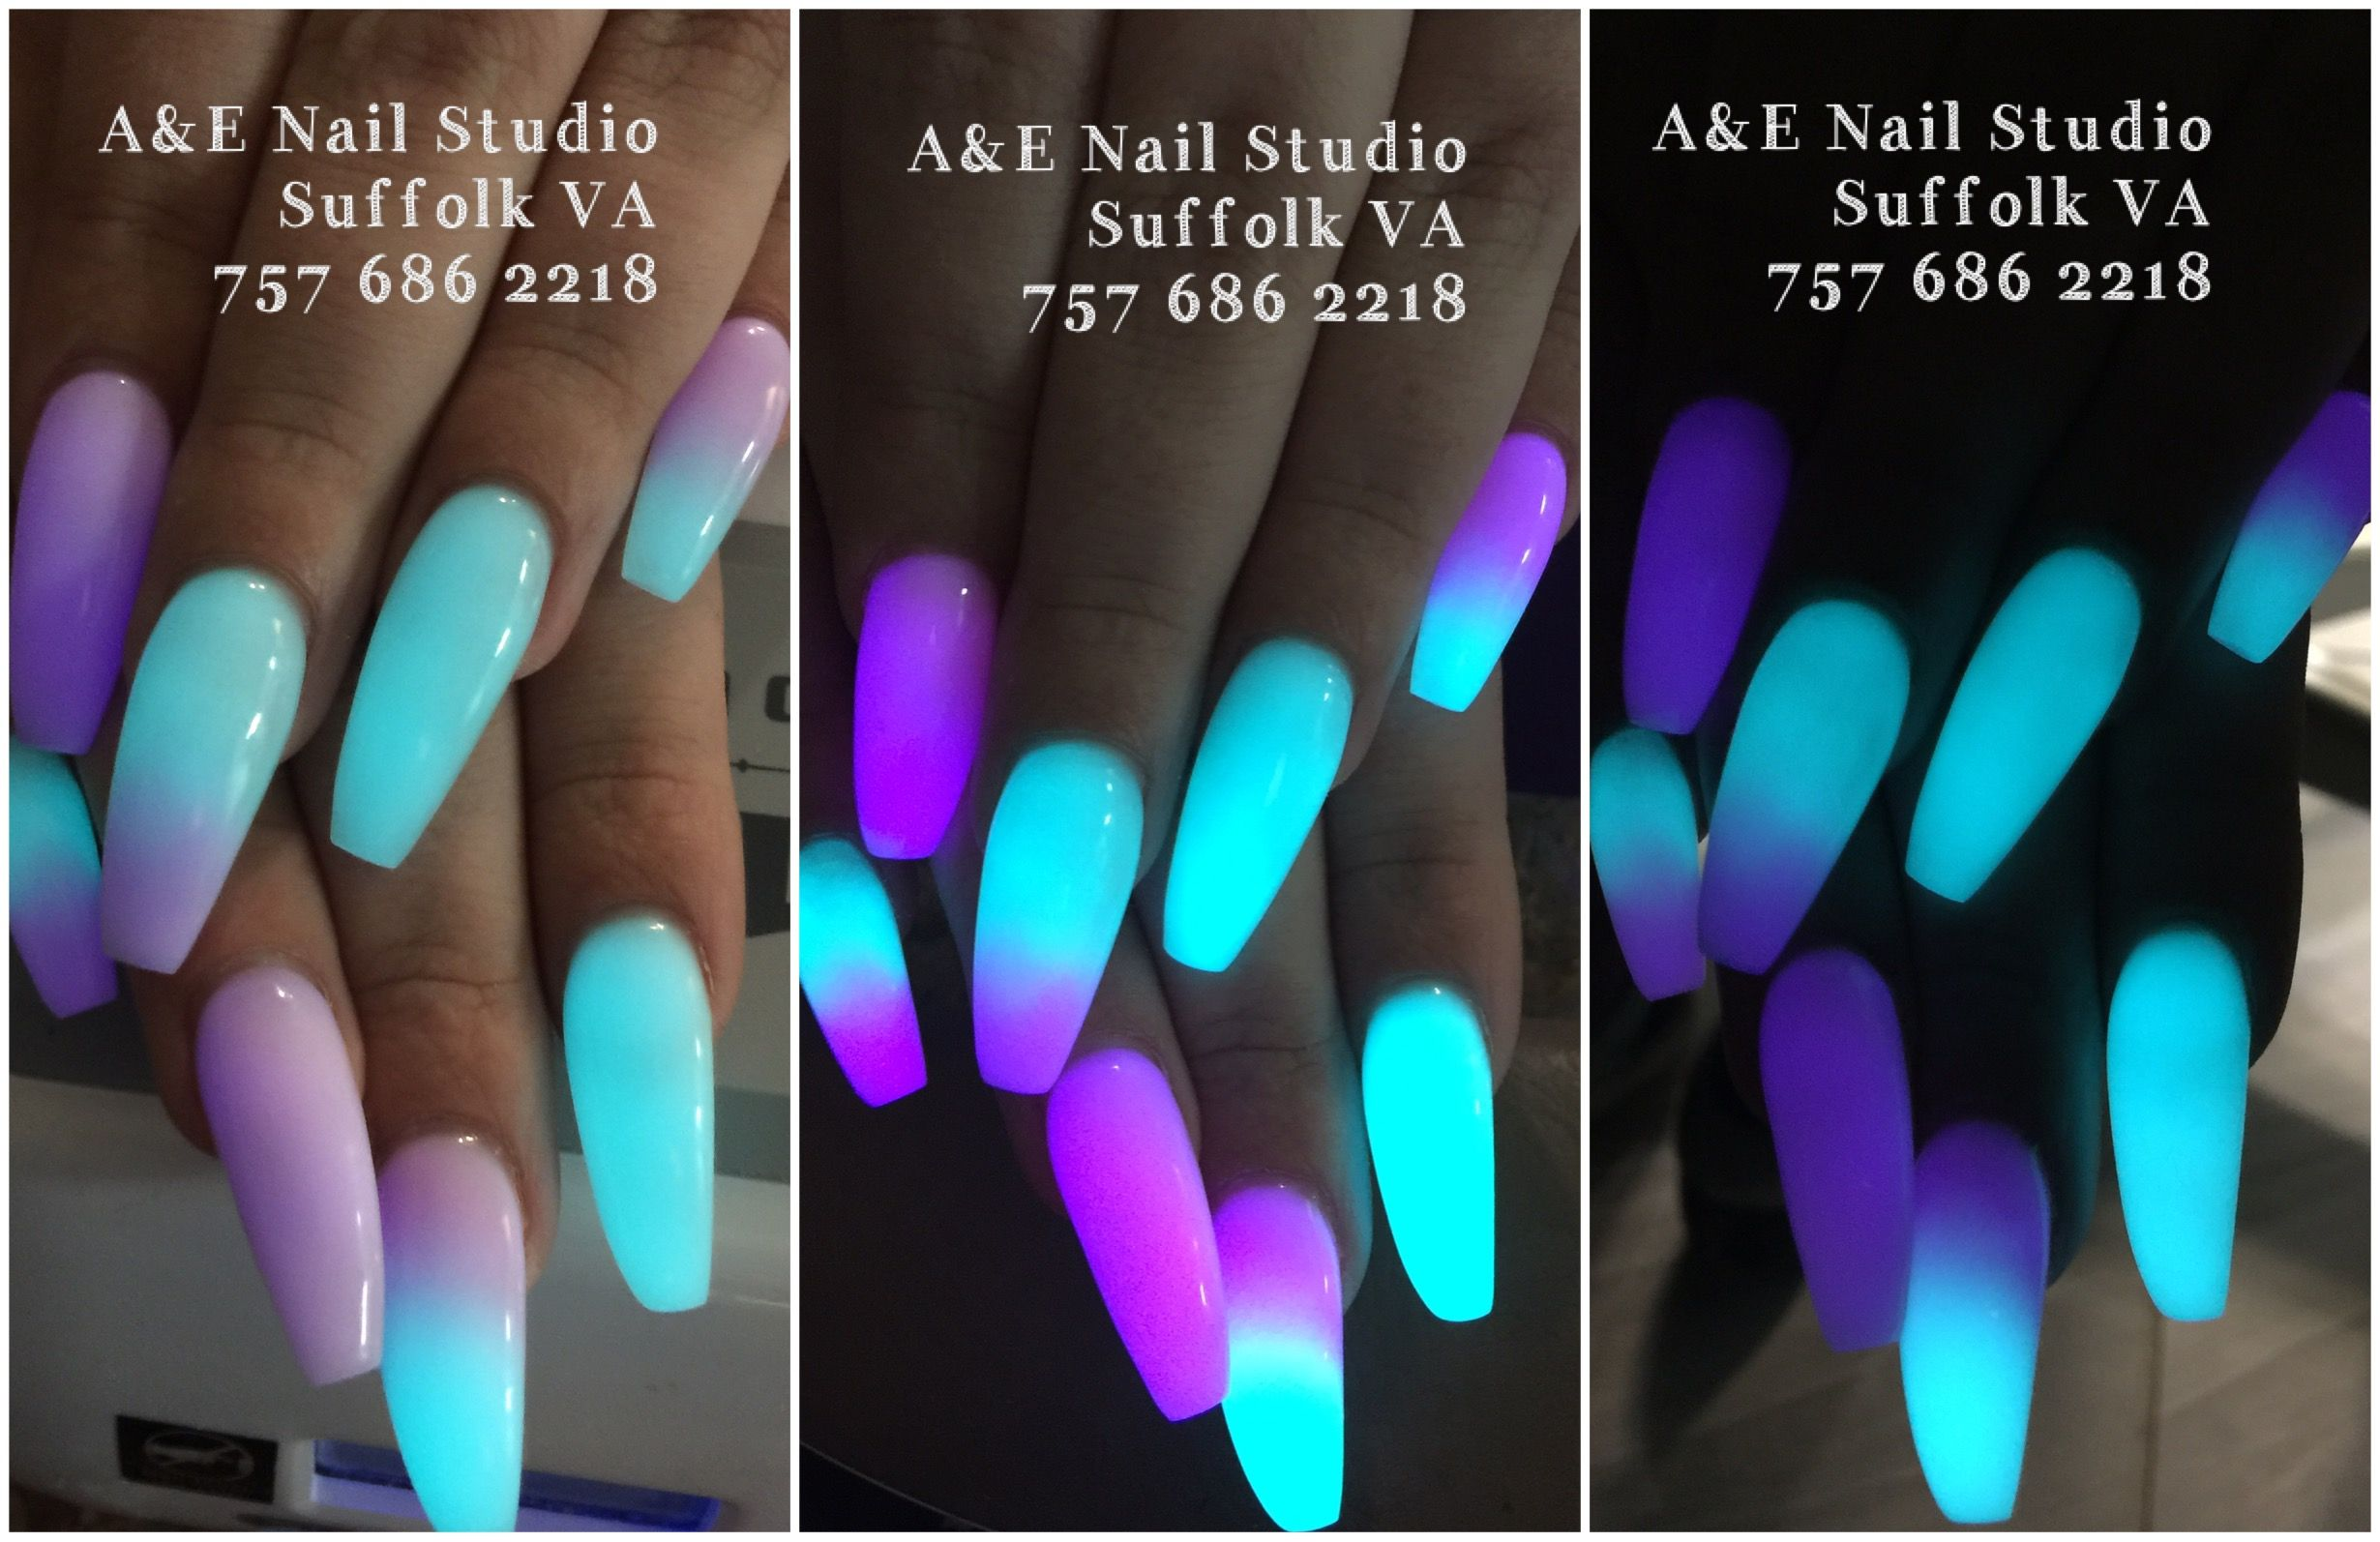 Glow In The Dark Nails Powder Fuchsia And Aqua Ombre Nails Glow Nails Rave Nails Neon Nails